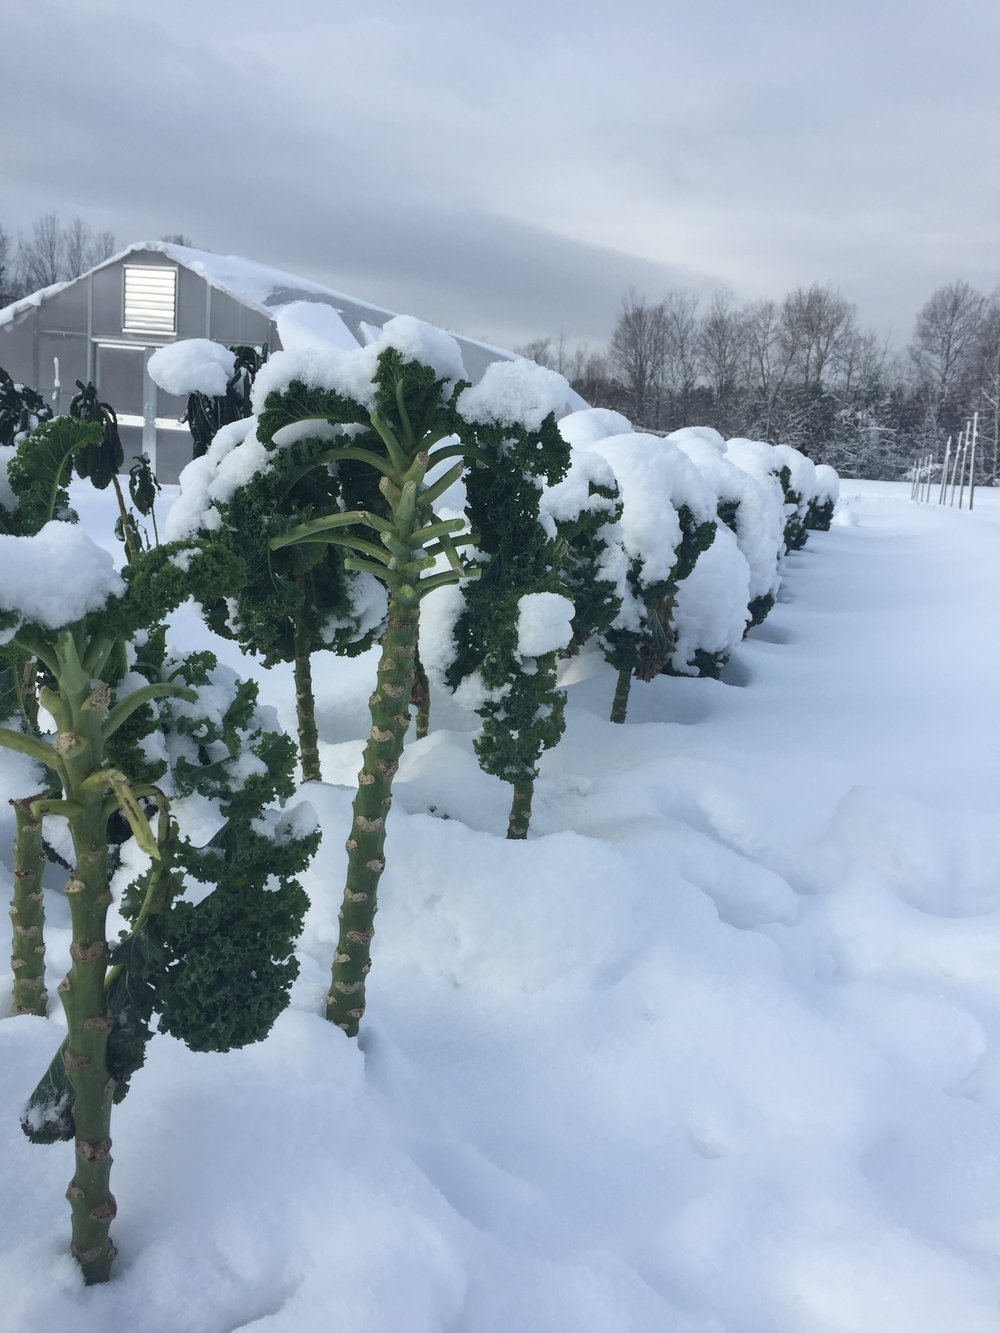 Winter kale after a snow storm